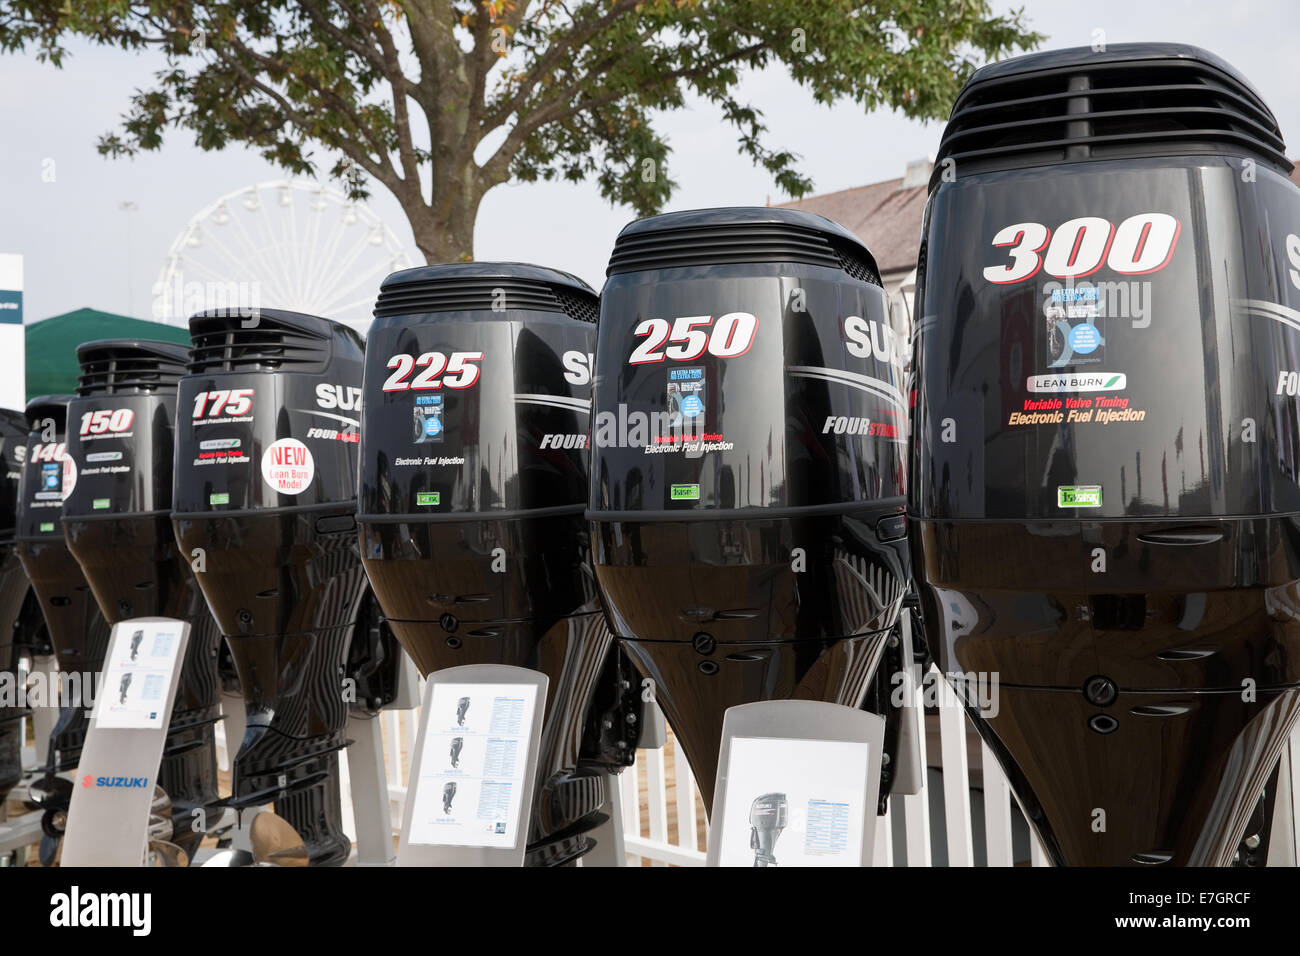 Suzuki outboard motors at the southampton boat show 2014 stock image